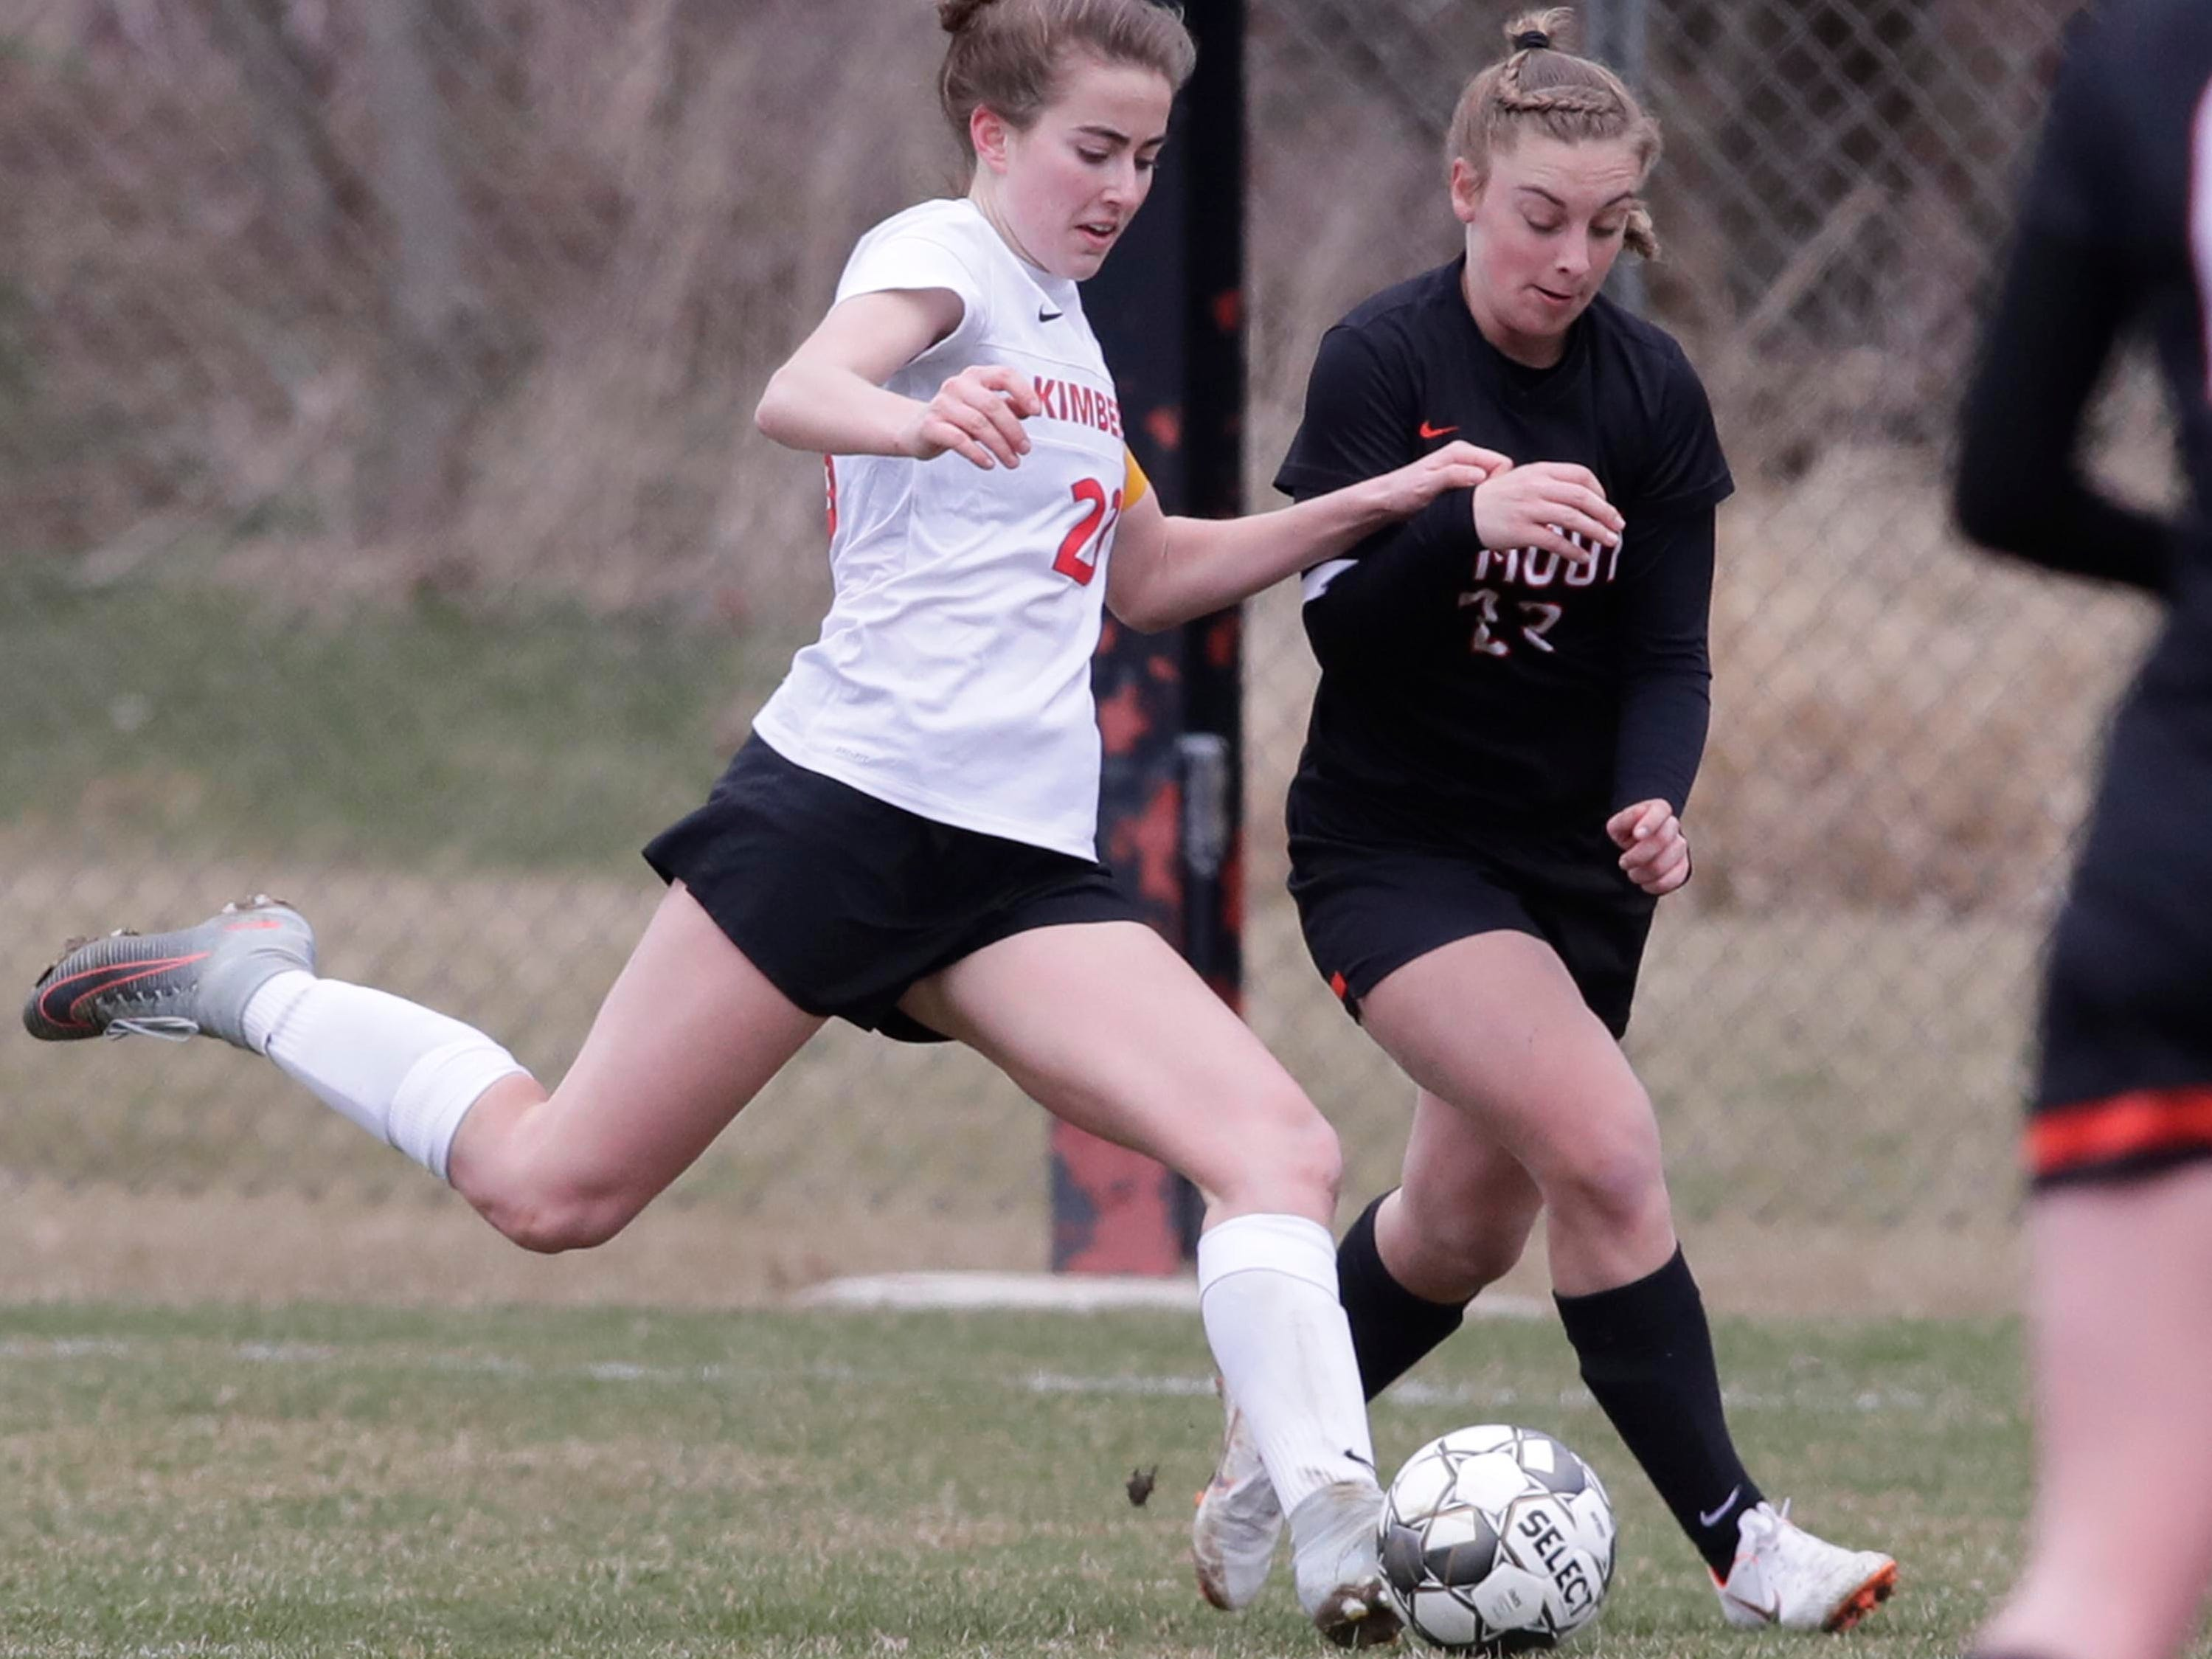 Kimberly's Elsi Twombly (23) aims her kick that would score by Plymouth's Dallas Kreisa (23, right), Saturday, April 13, 2019, in Plymouth, Wis.